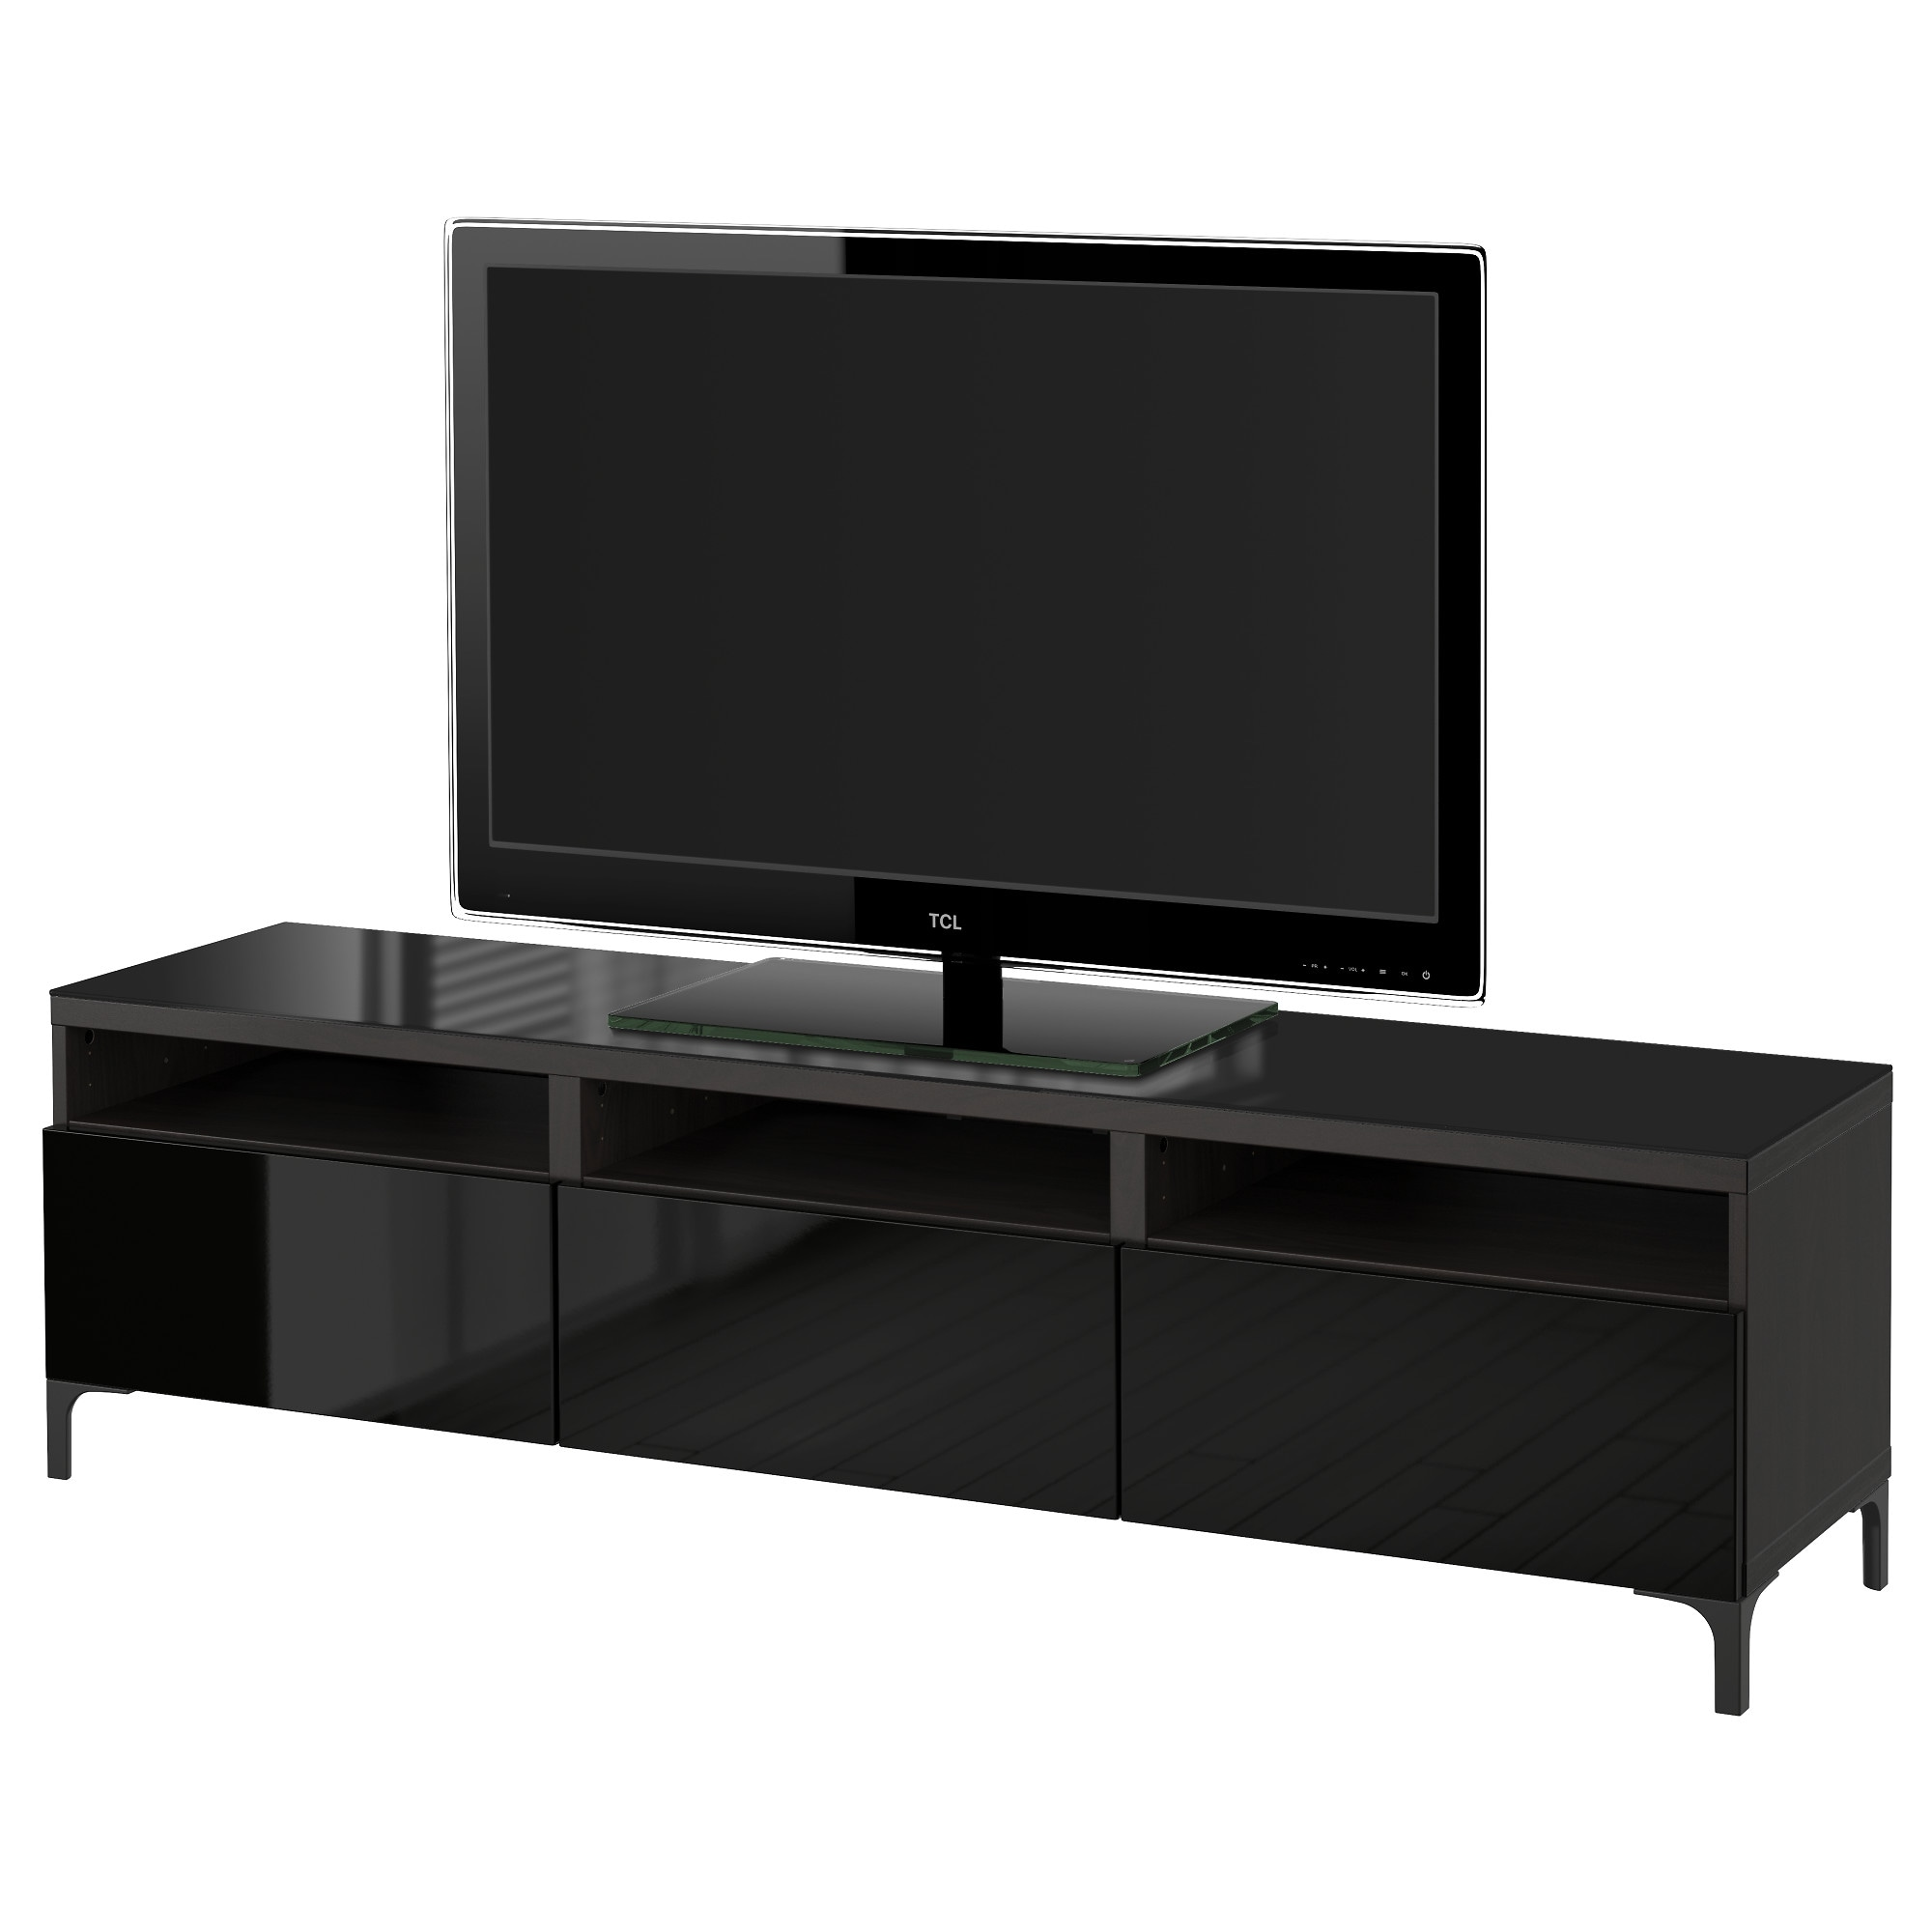 BESTÅ TV Unit With Drawers, Black Brown, Selsviken High Gloss/black